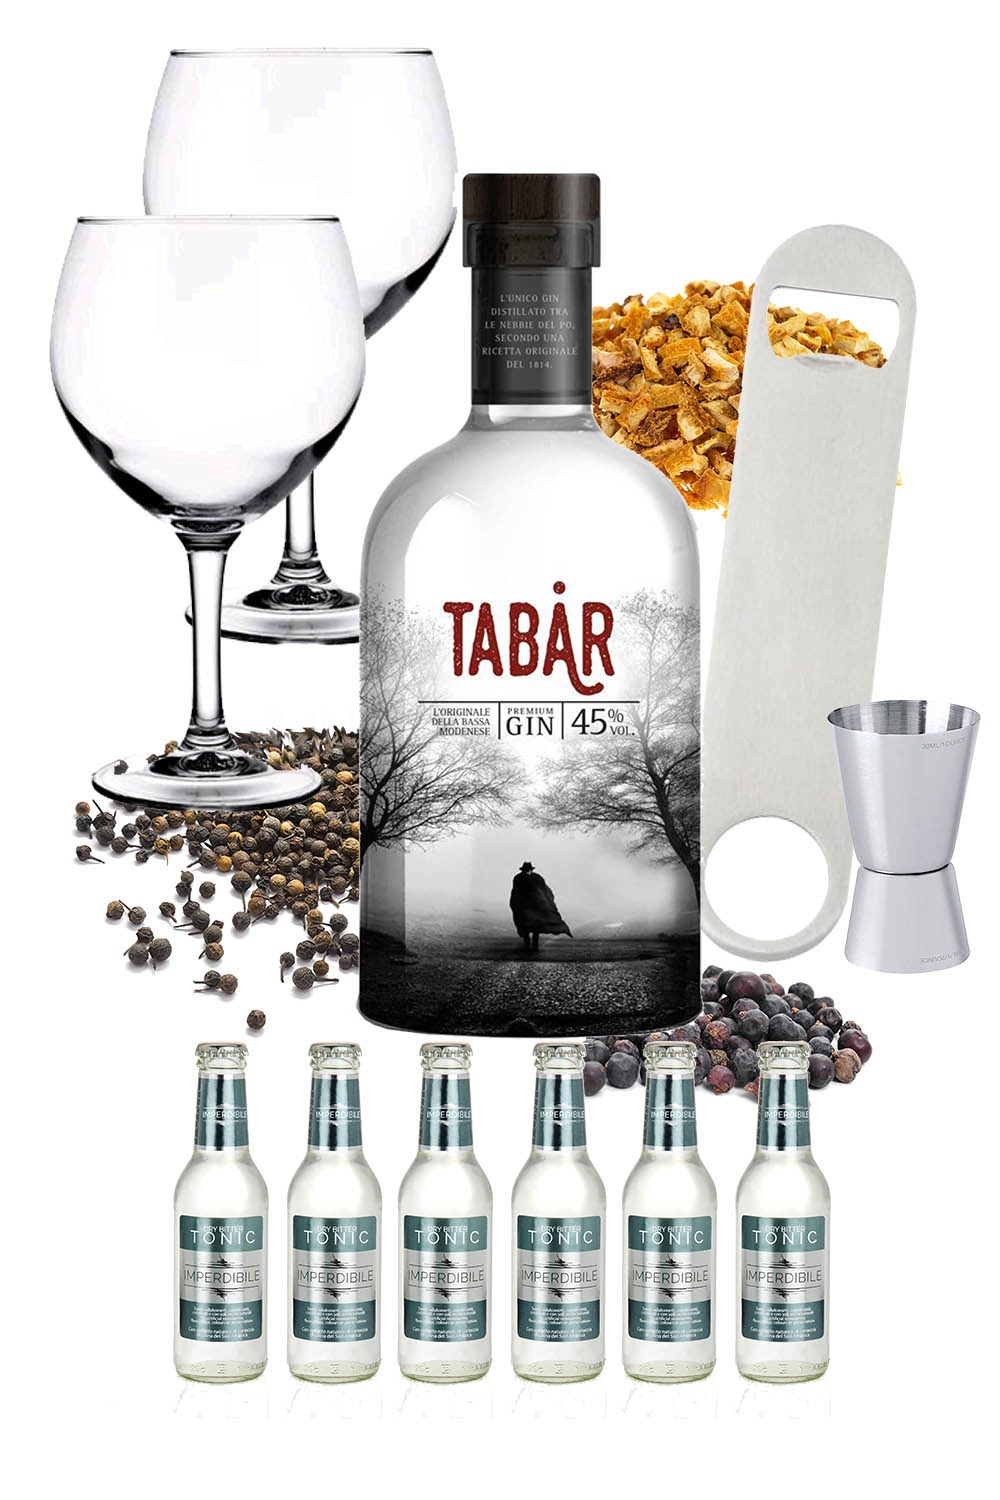 Tabar – Mission Ginpossible